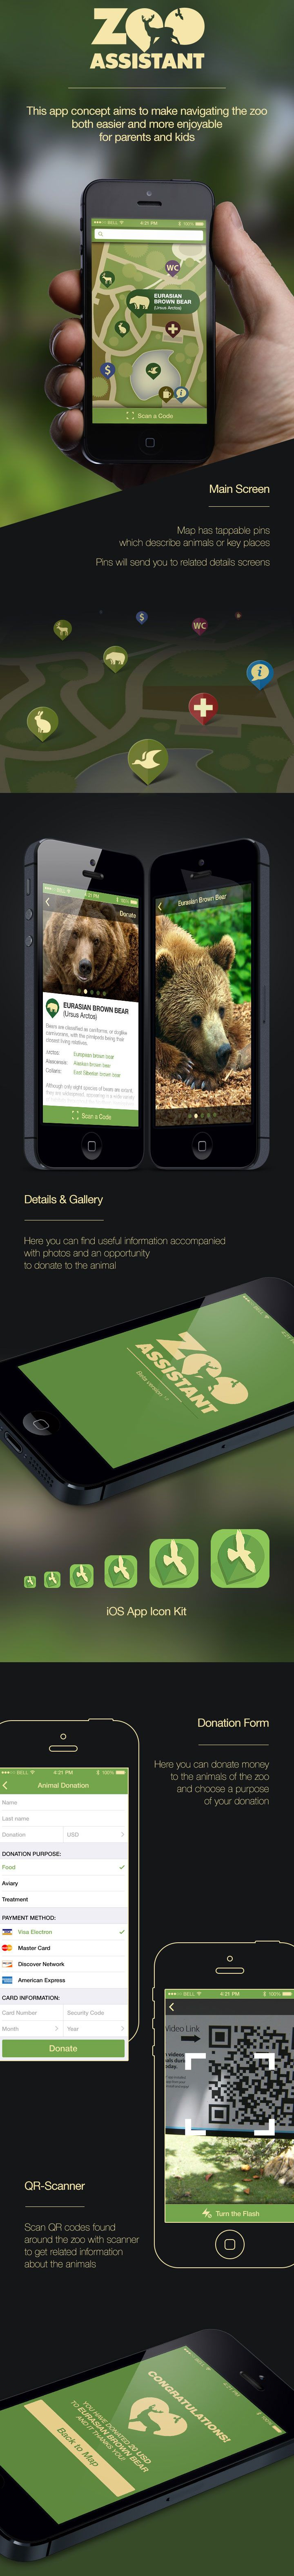 Unique App Design, Zoo Assistant via @rodrigofjaramil #App #Design